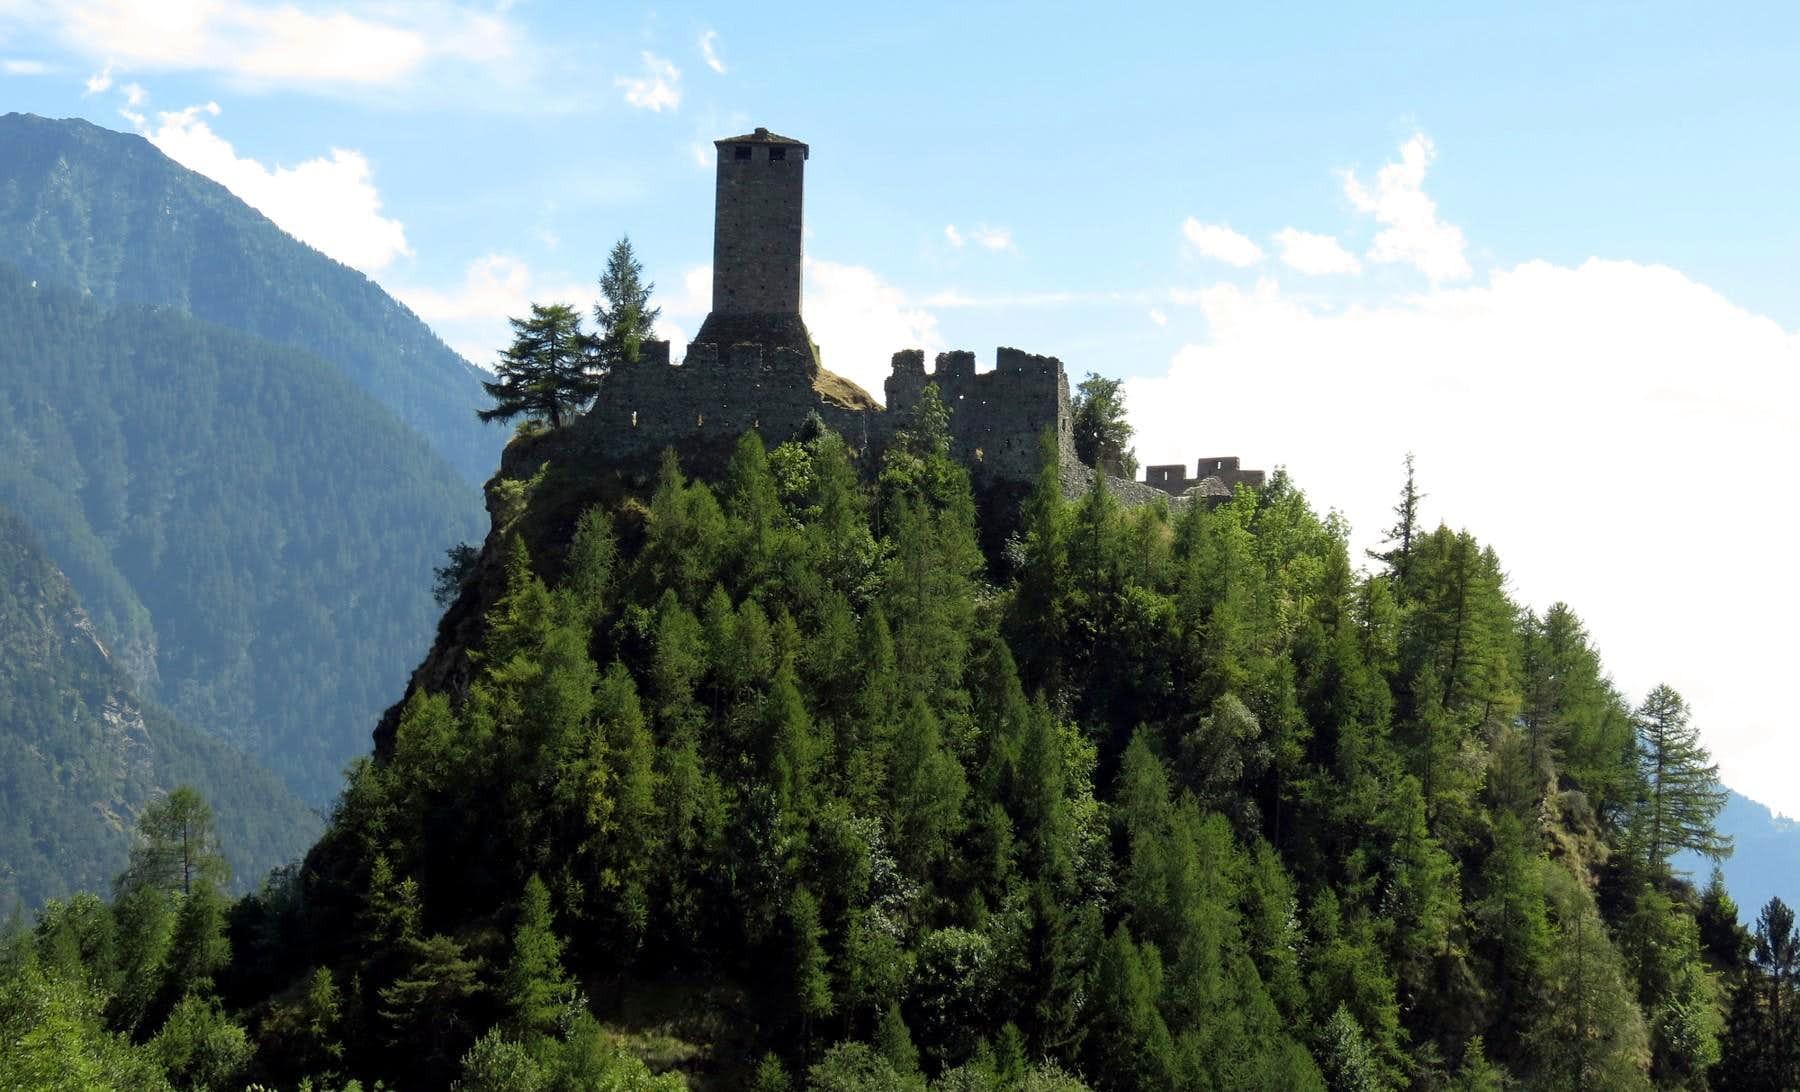 One-week trip around Castles Churches & Shrines of the Aosta Valley / A